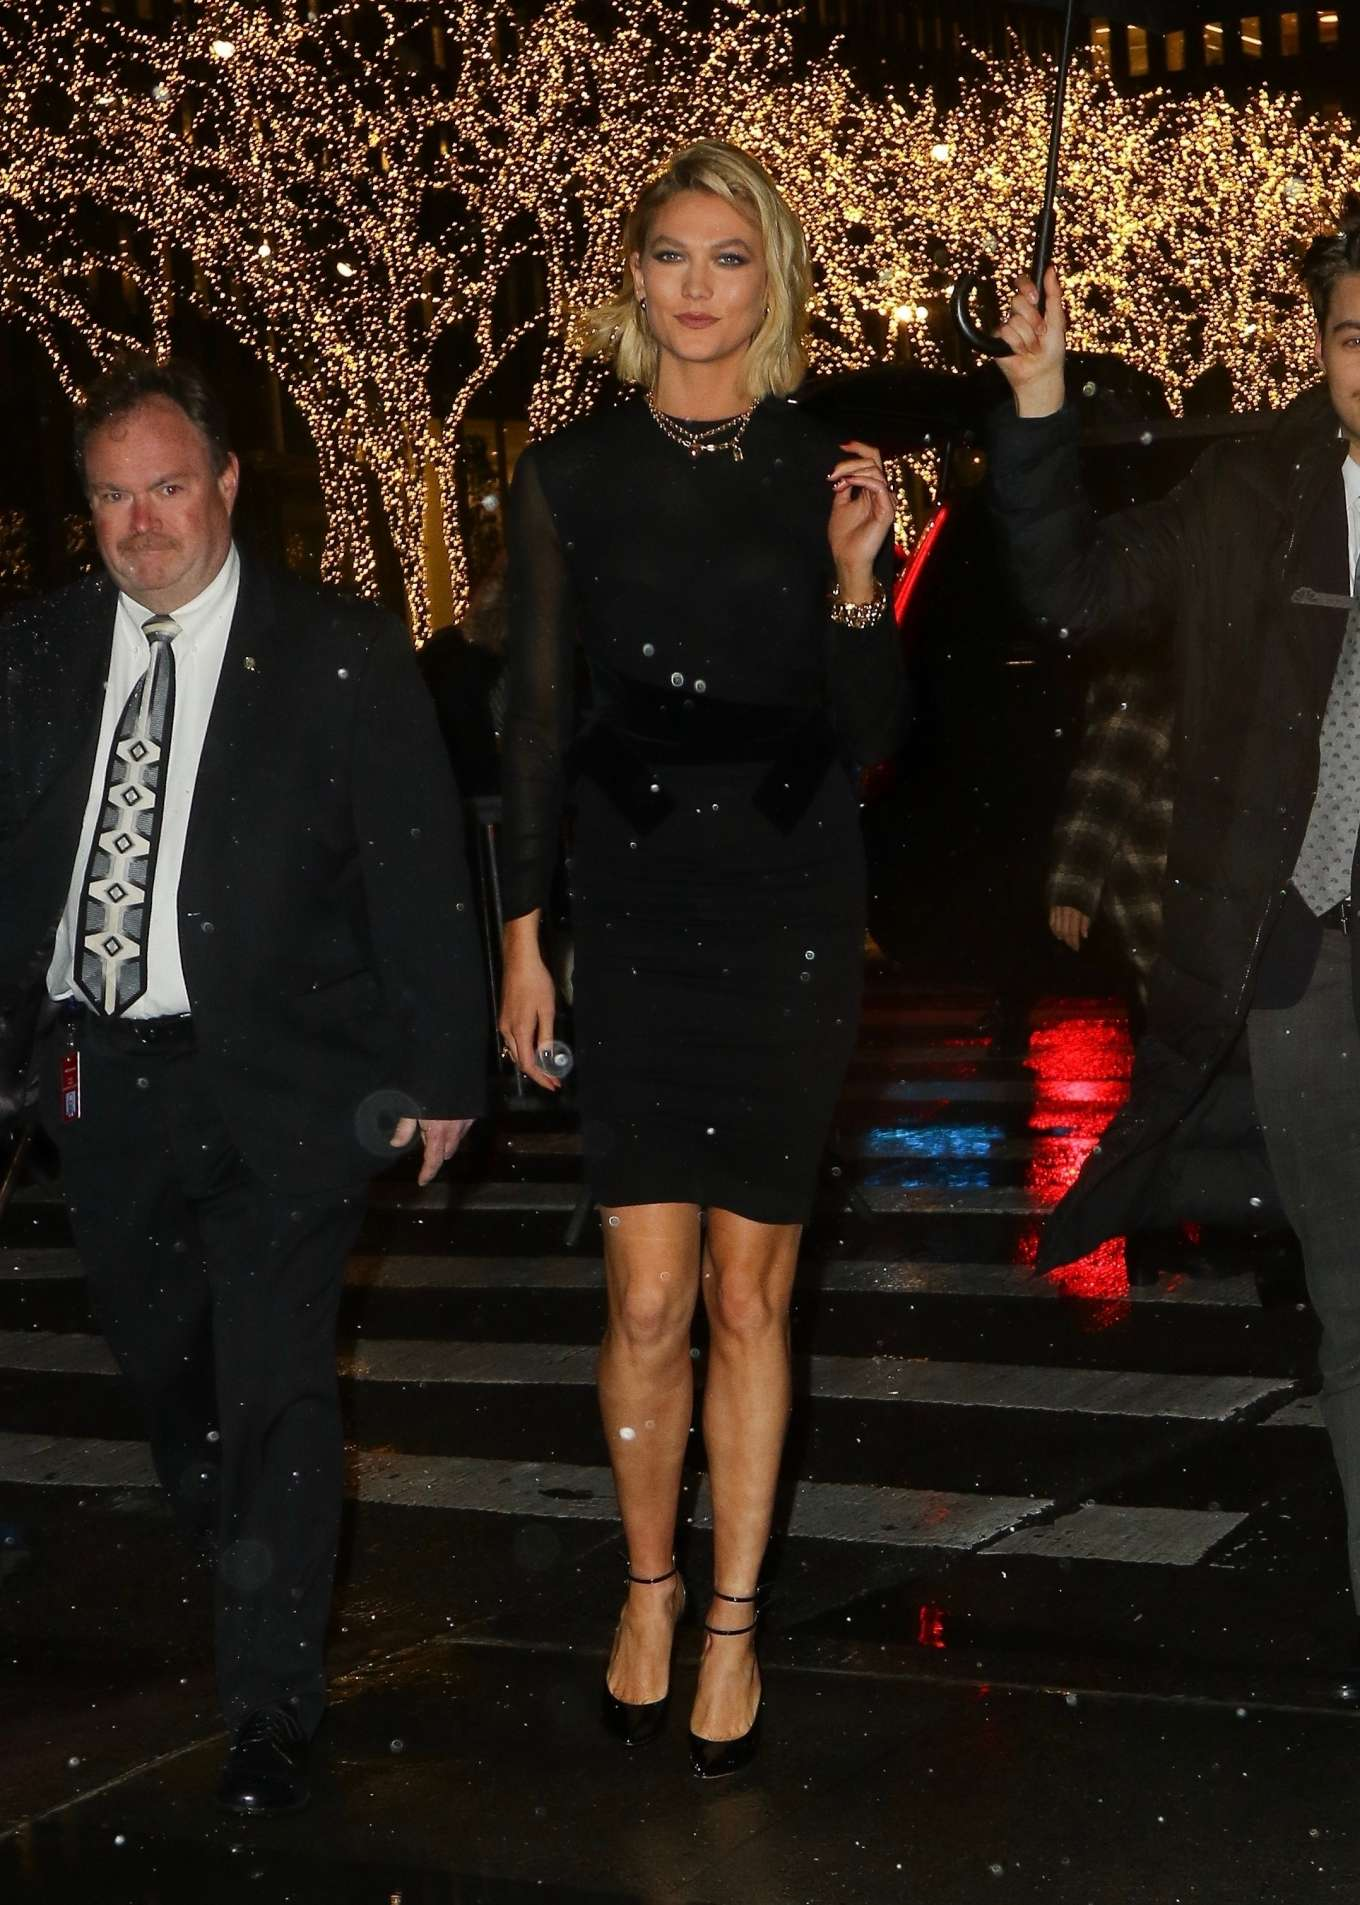 Karlie Kloss – Arrives at The Tonight Show Starring Jimmy Fallon-06